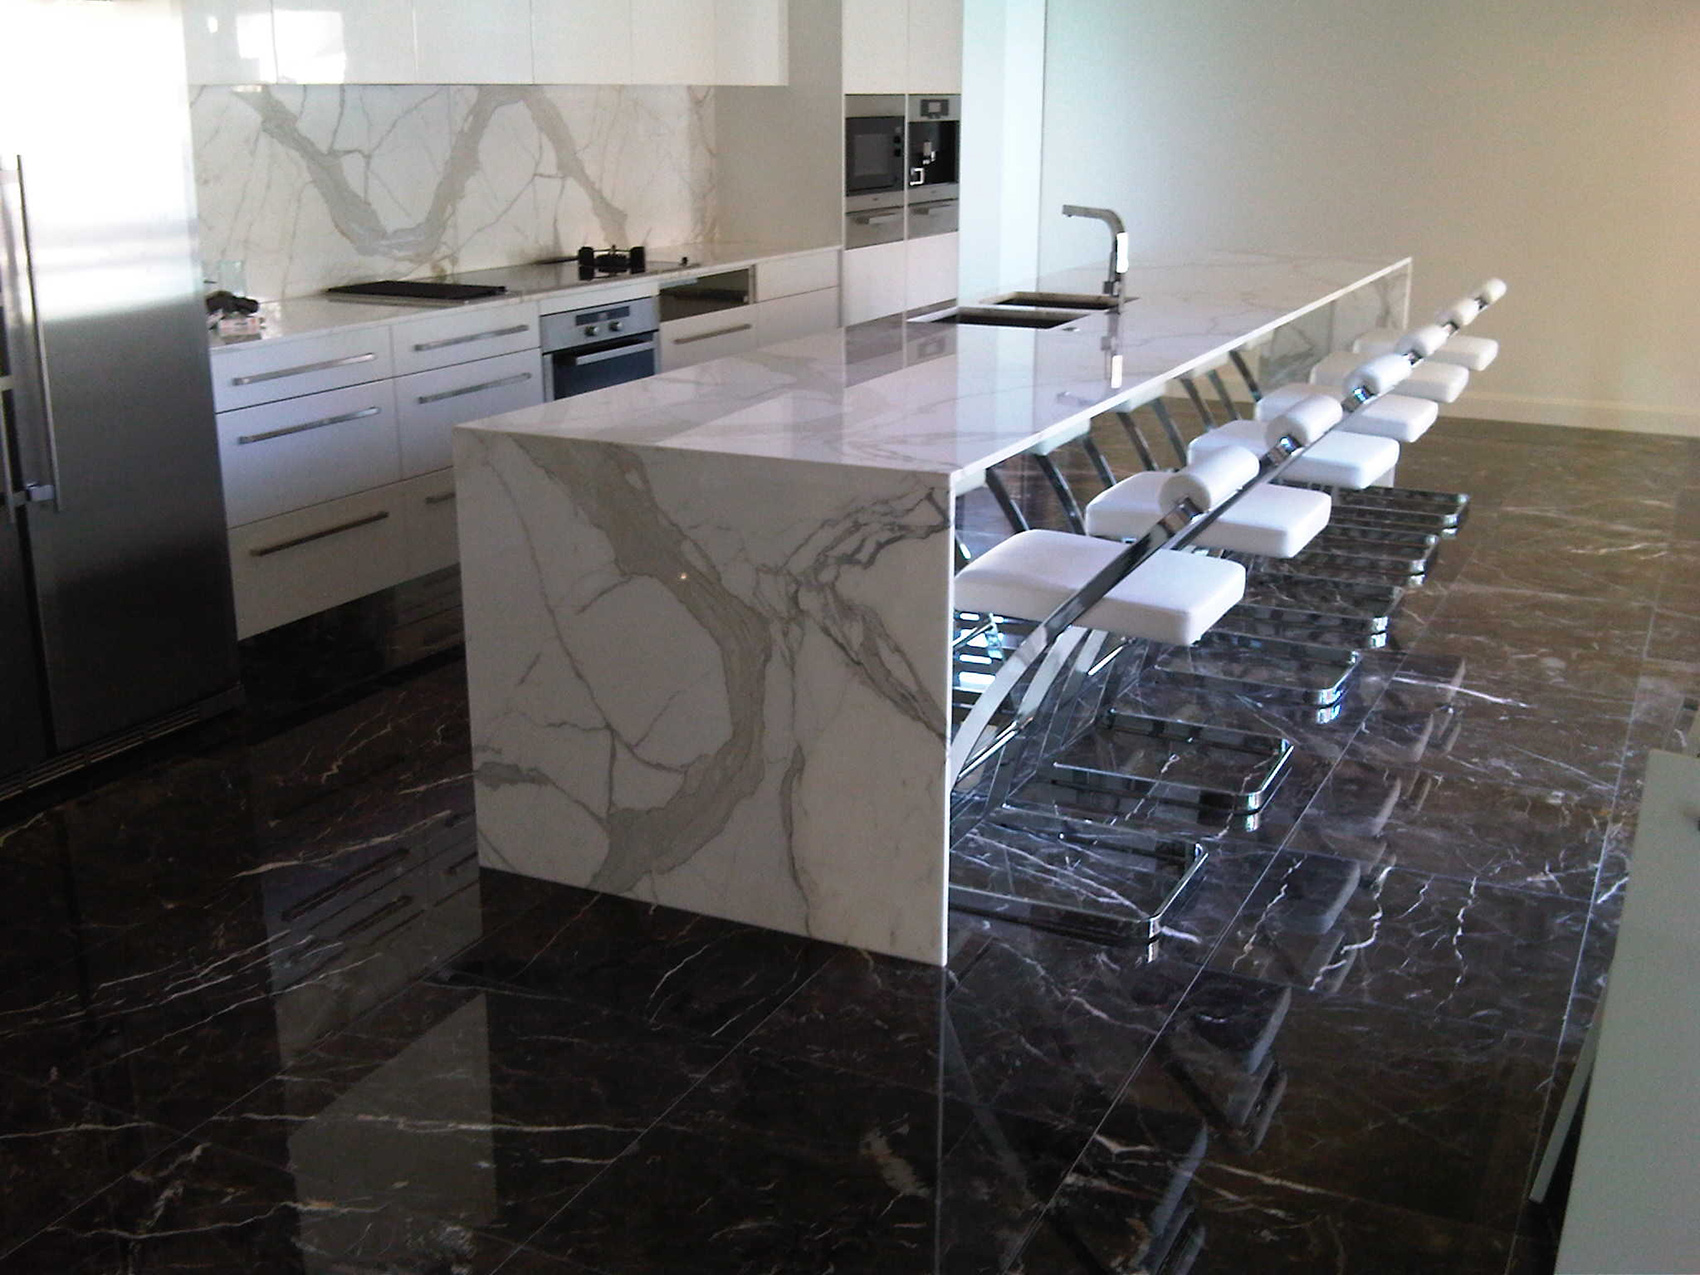 Dark-Emperador Polished Floor Calacutta bench tops